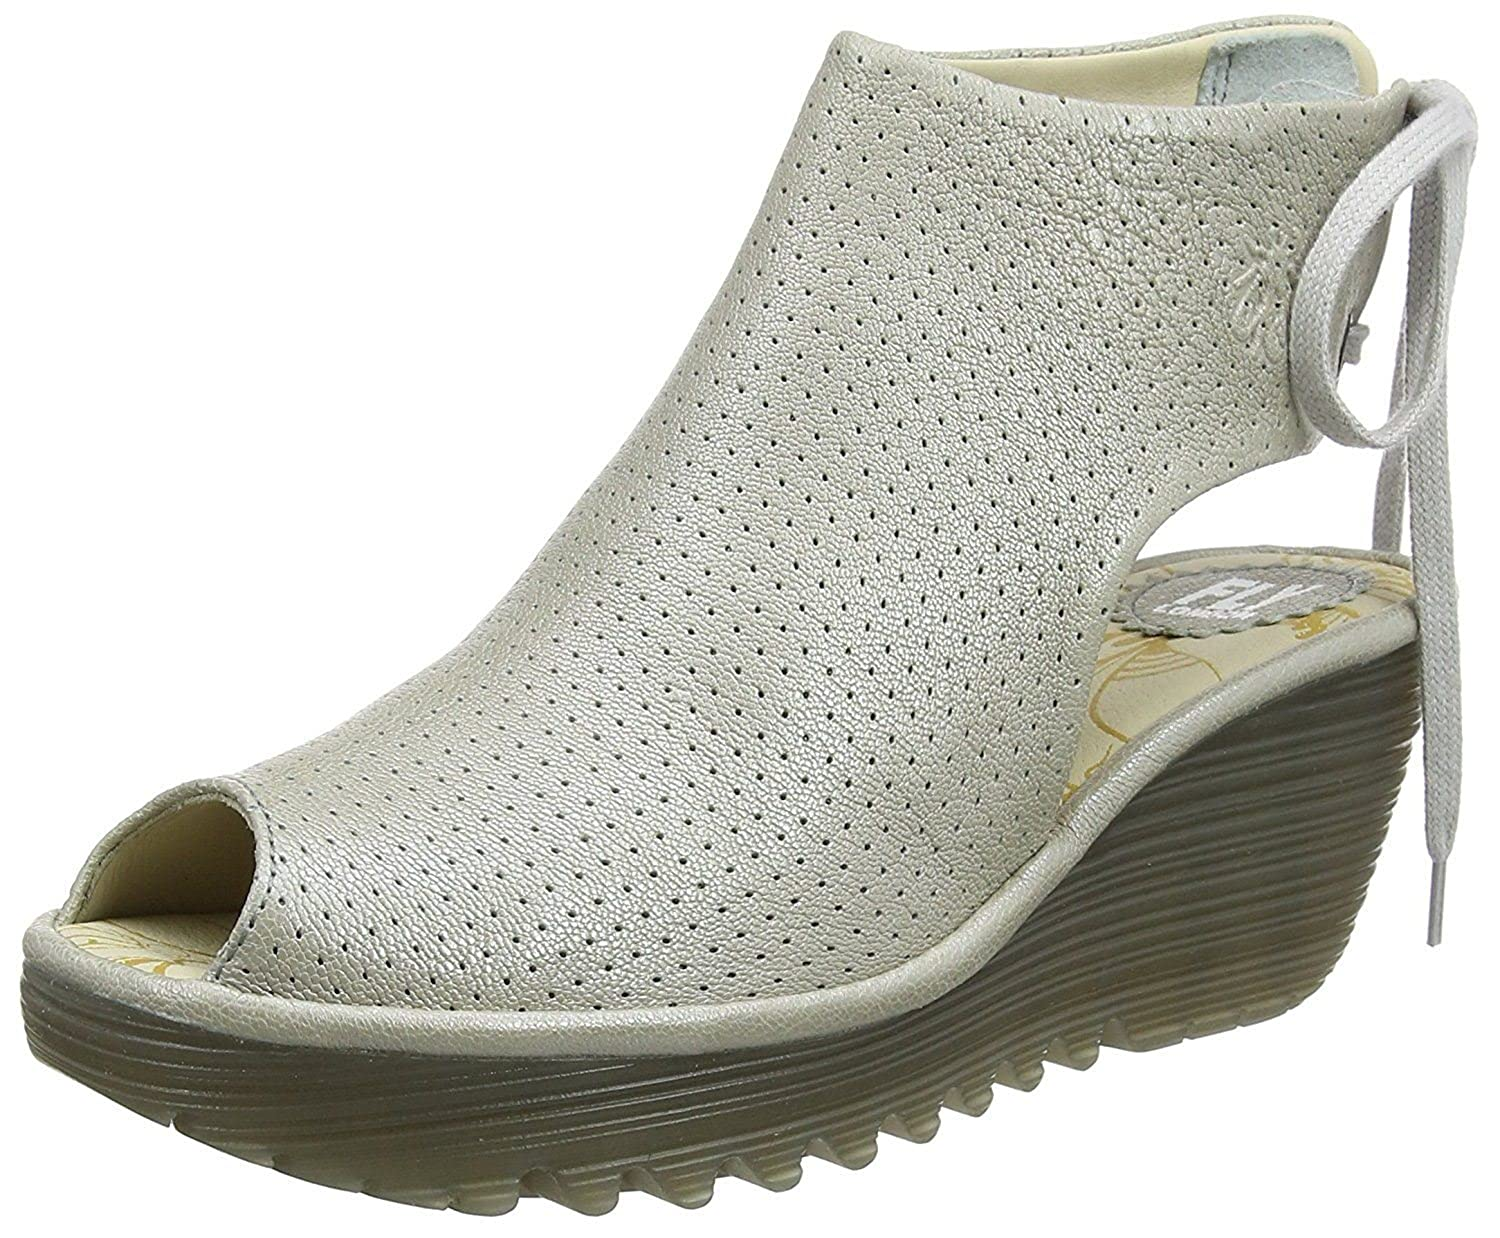 #Fly London Ypul799fly Silver Womens Leather Wedge Sandals Shoes B07C5ZZ9RG 6 UK 39 EU 8 US